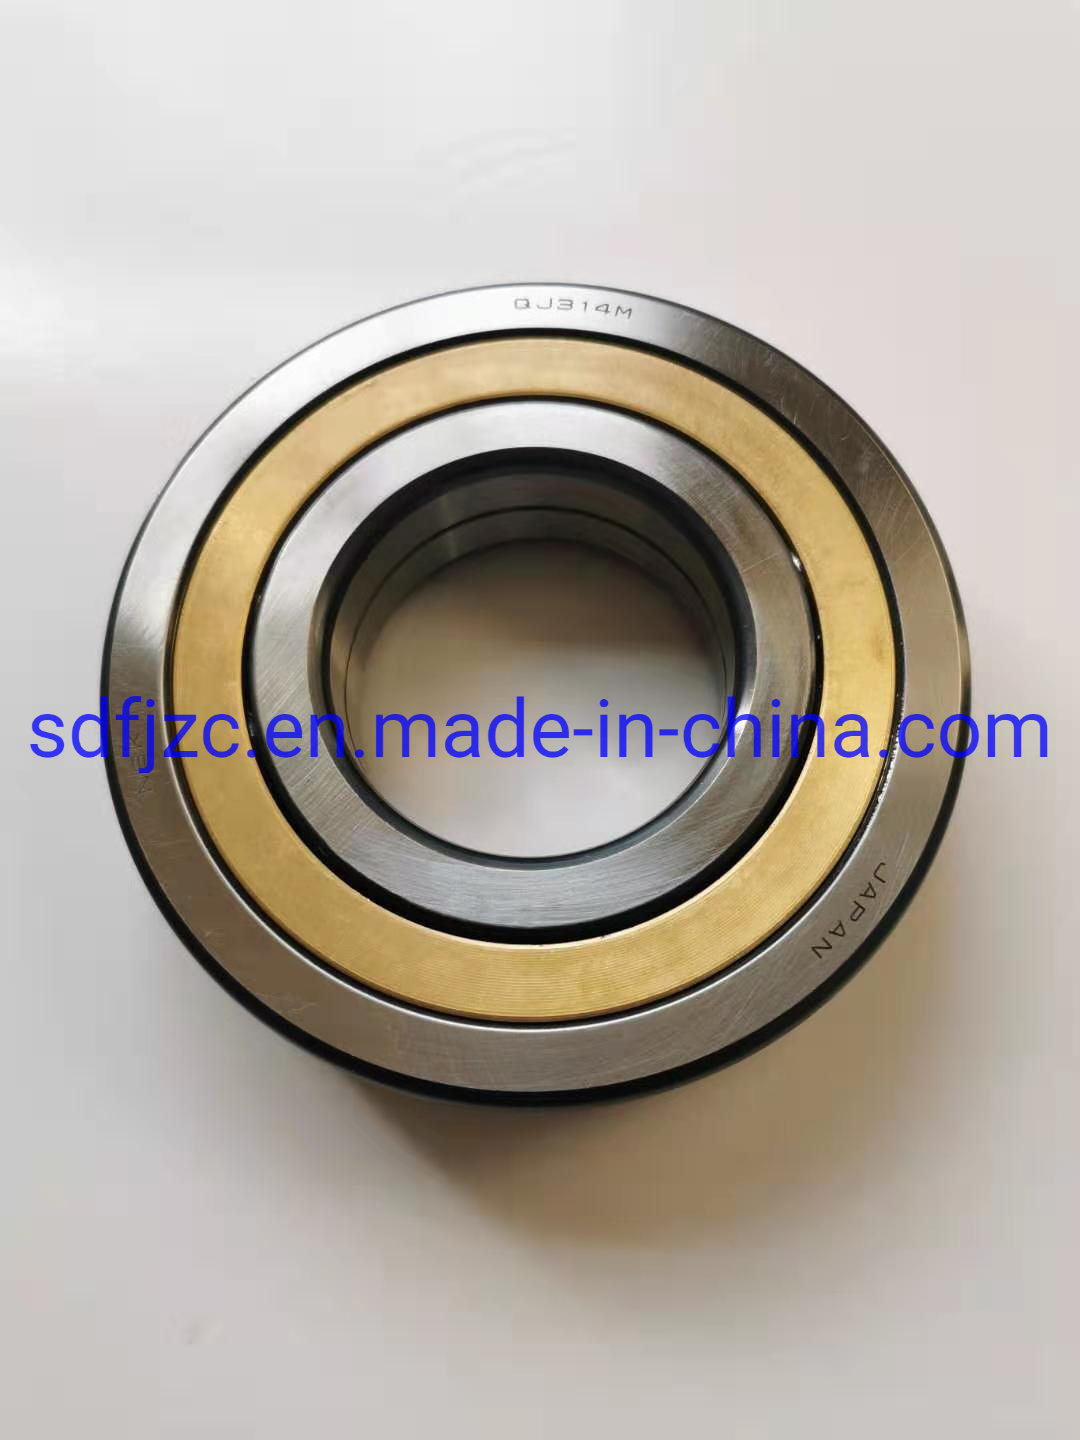 66 Coupling Outer Diameter:40 VXB Brand Japan MJC-40CSK-EBL 1//2 inch to 16mm Jaw-Type Flexible Coupling Coupling Bore 2 Diameter:16mm Coupling Length